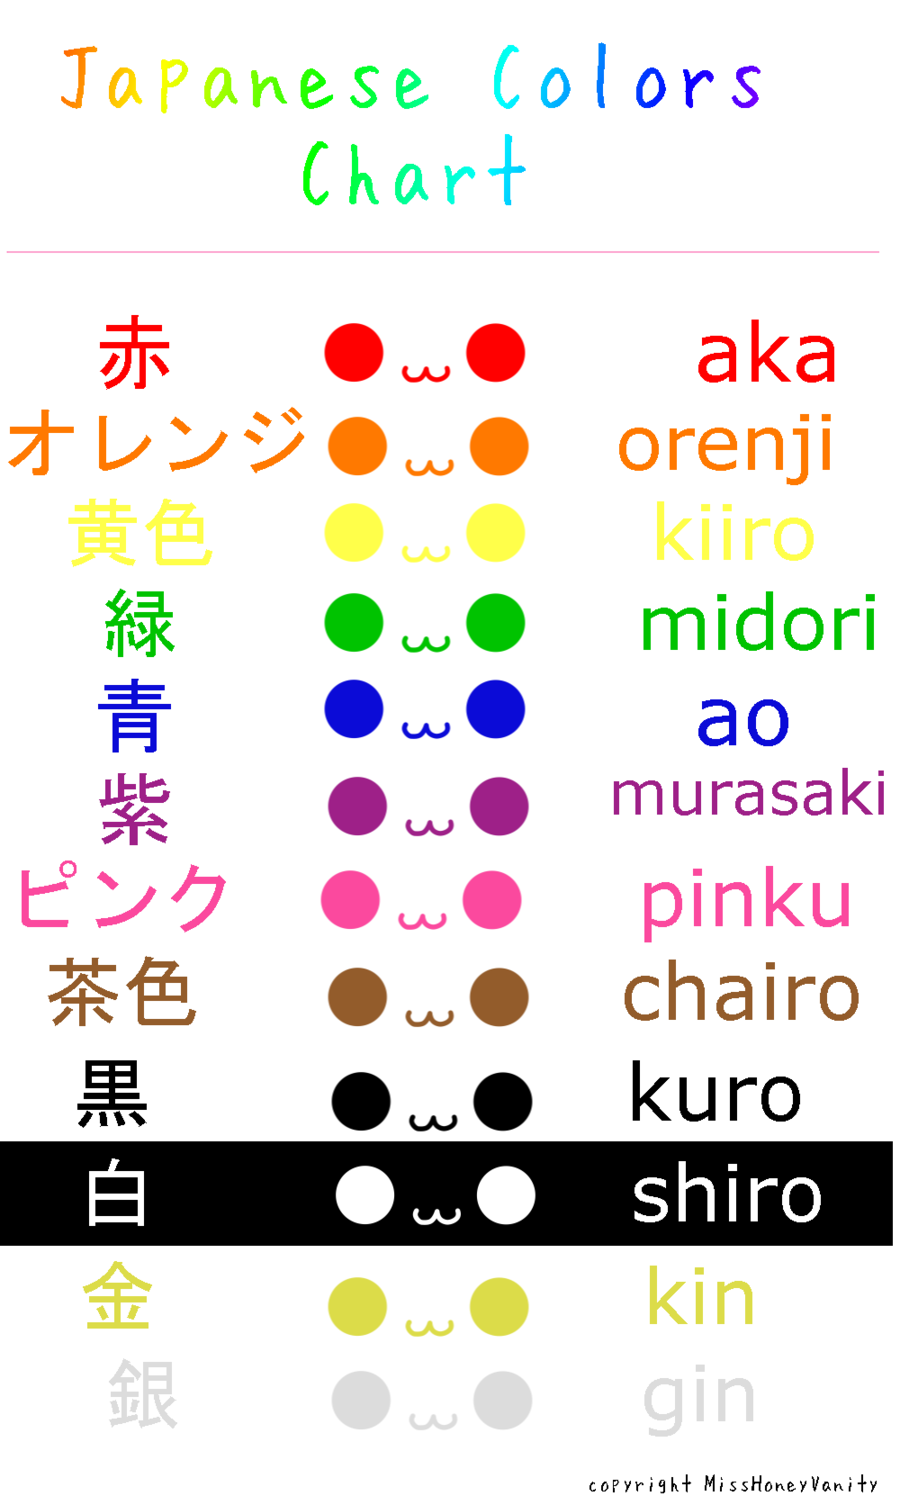 Practicing Japanese colors Japanese words, Japanese